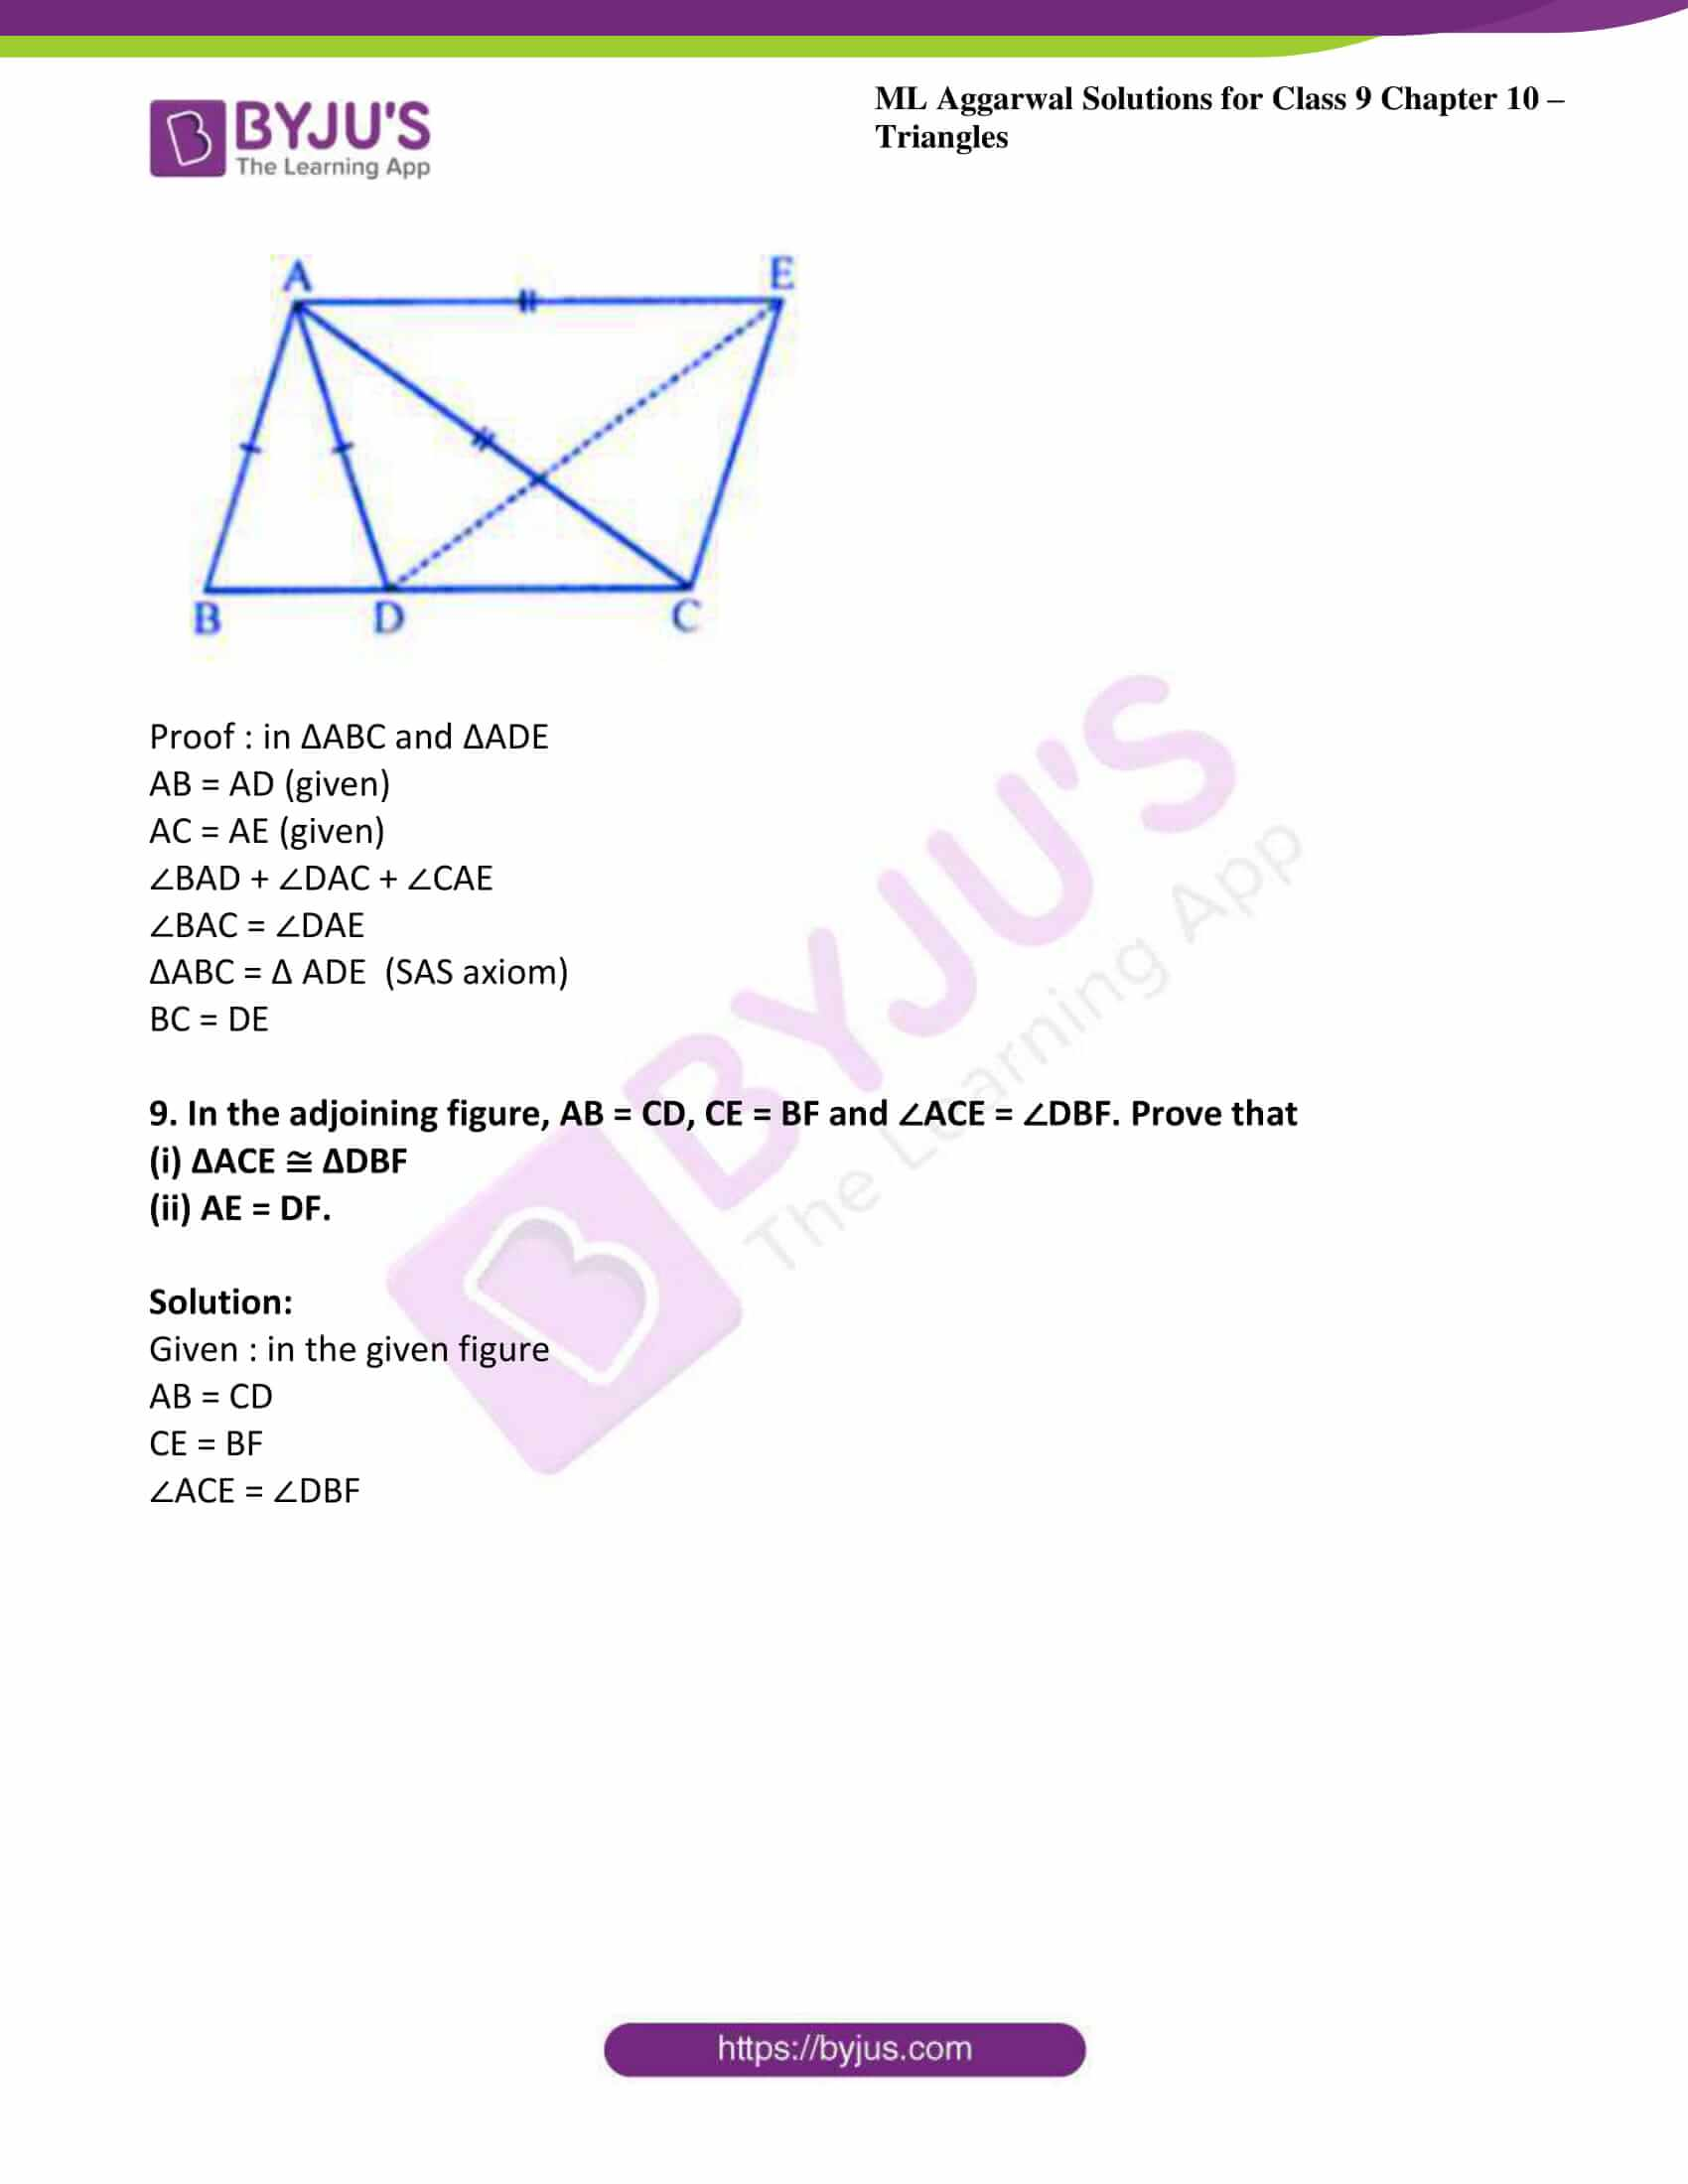 ml aggarwal solutions for class 9 maths chapter 10 07